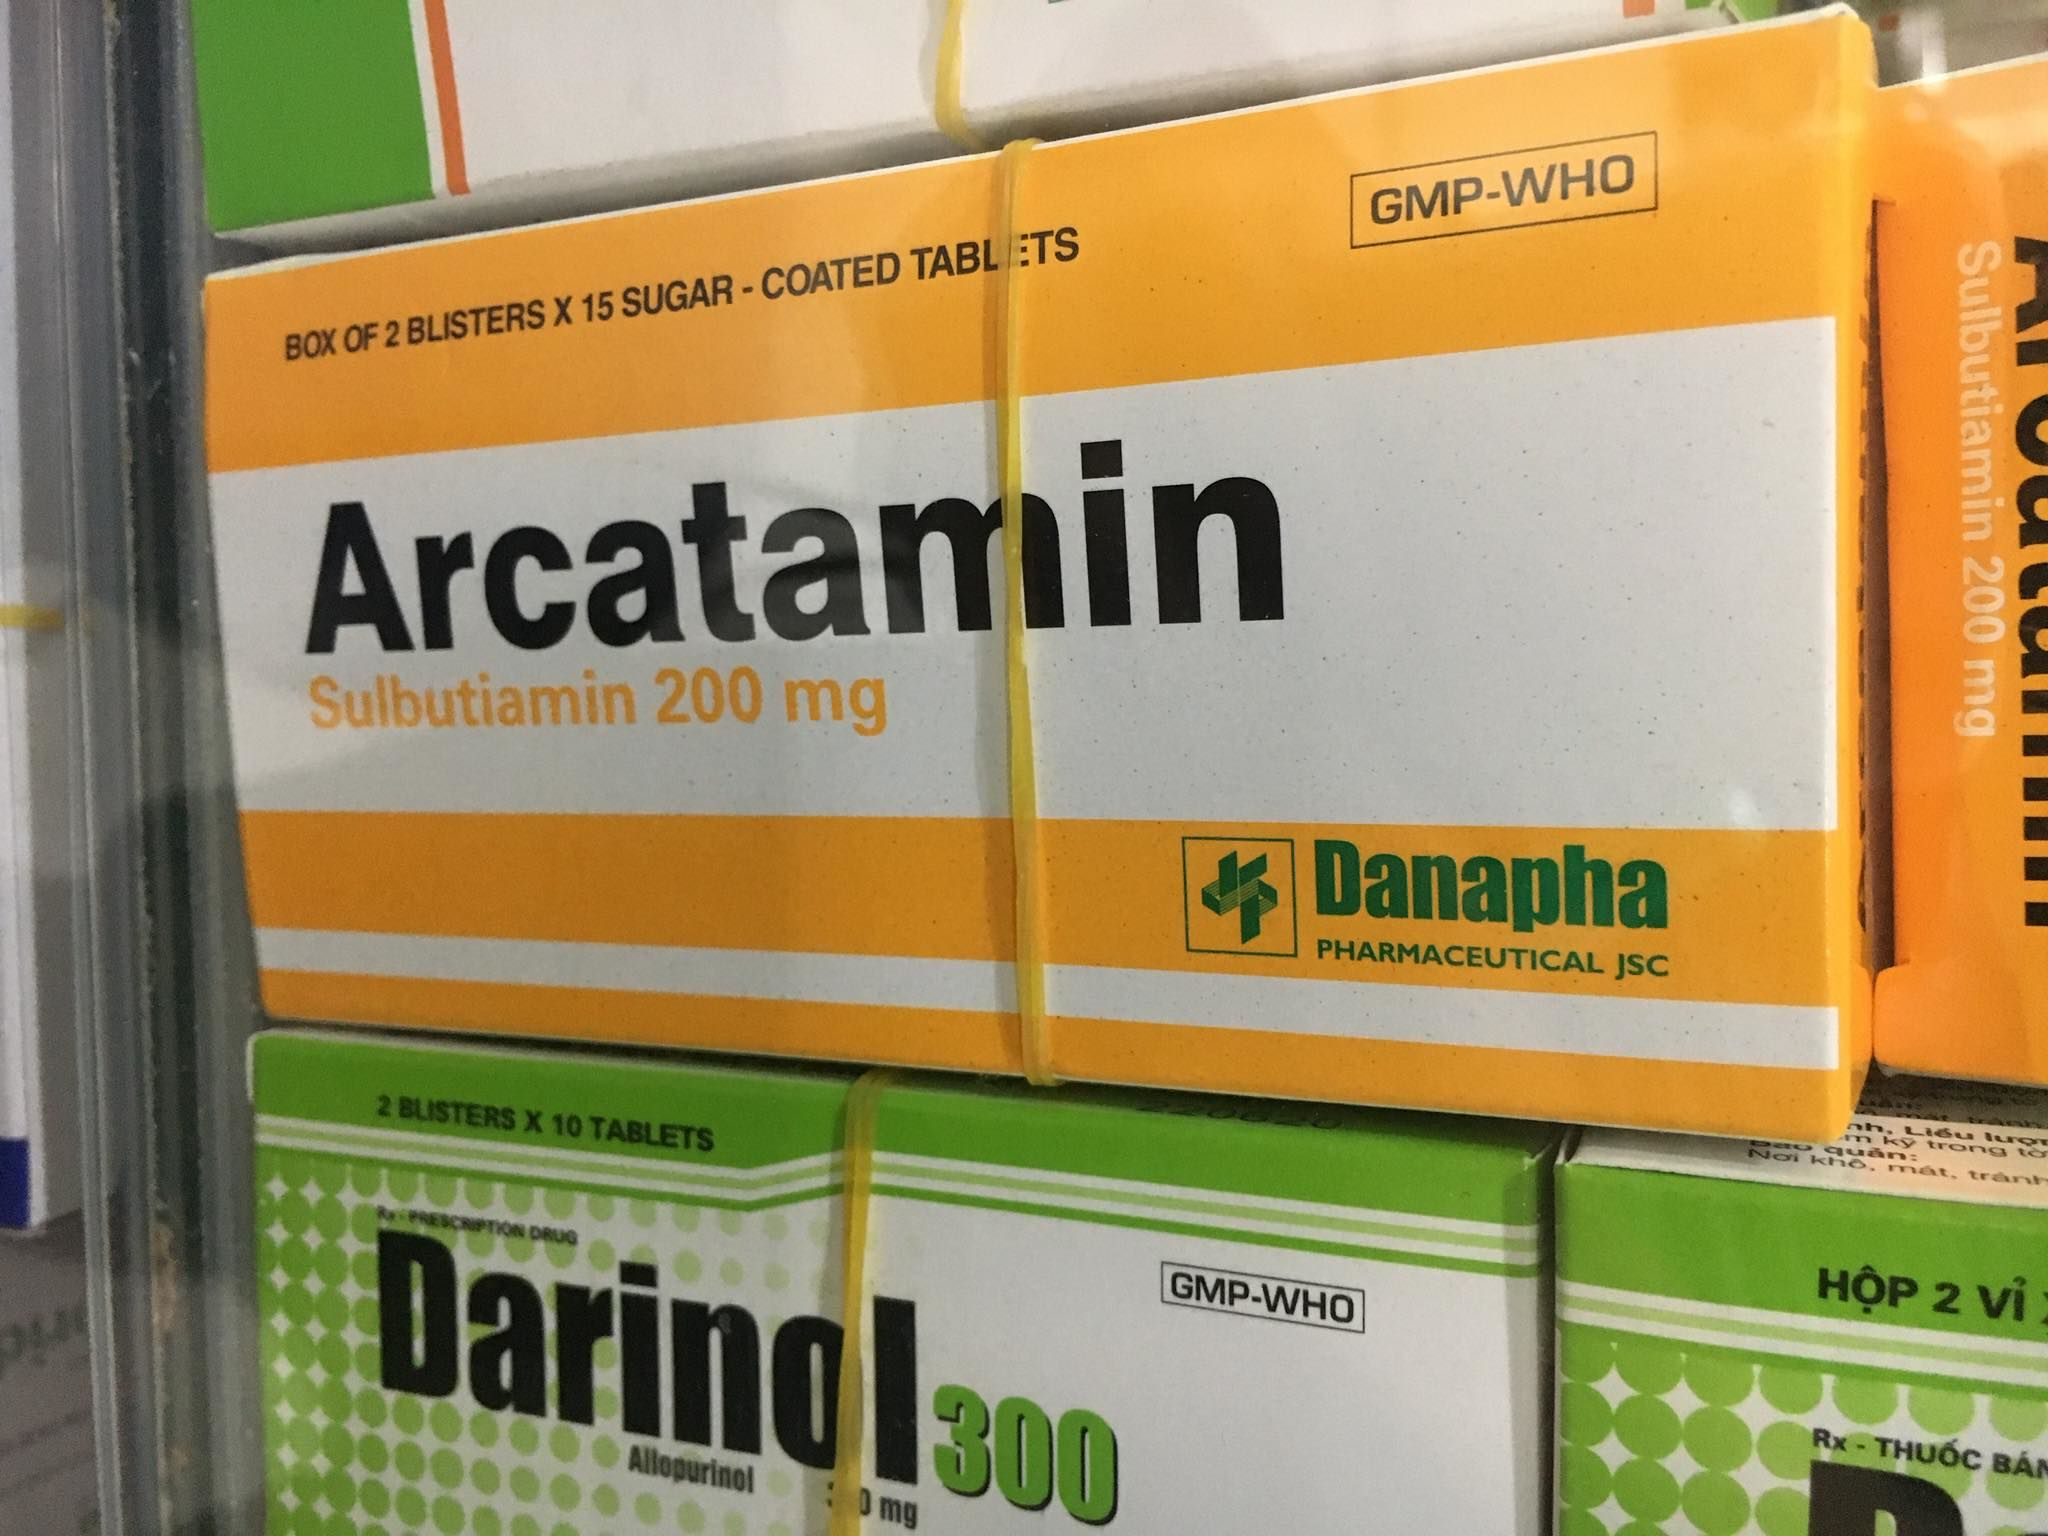 Arcatamin 200mg Danapha